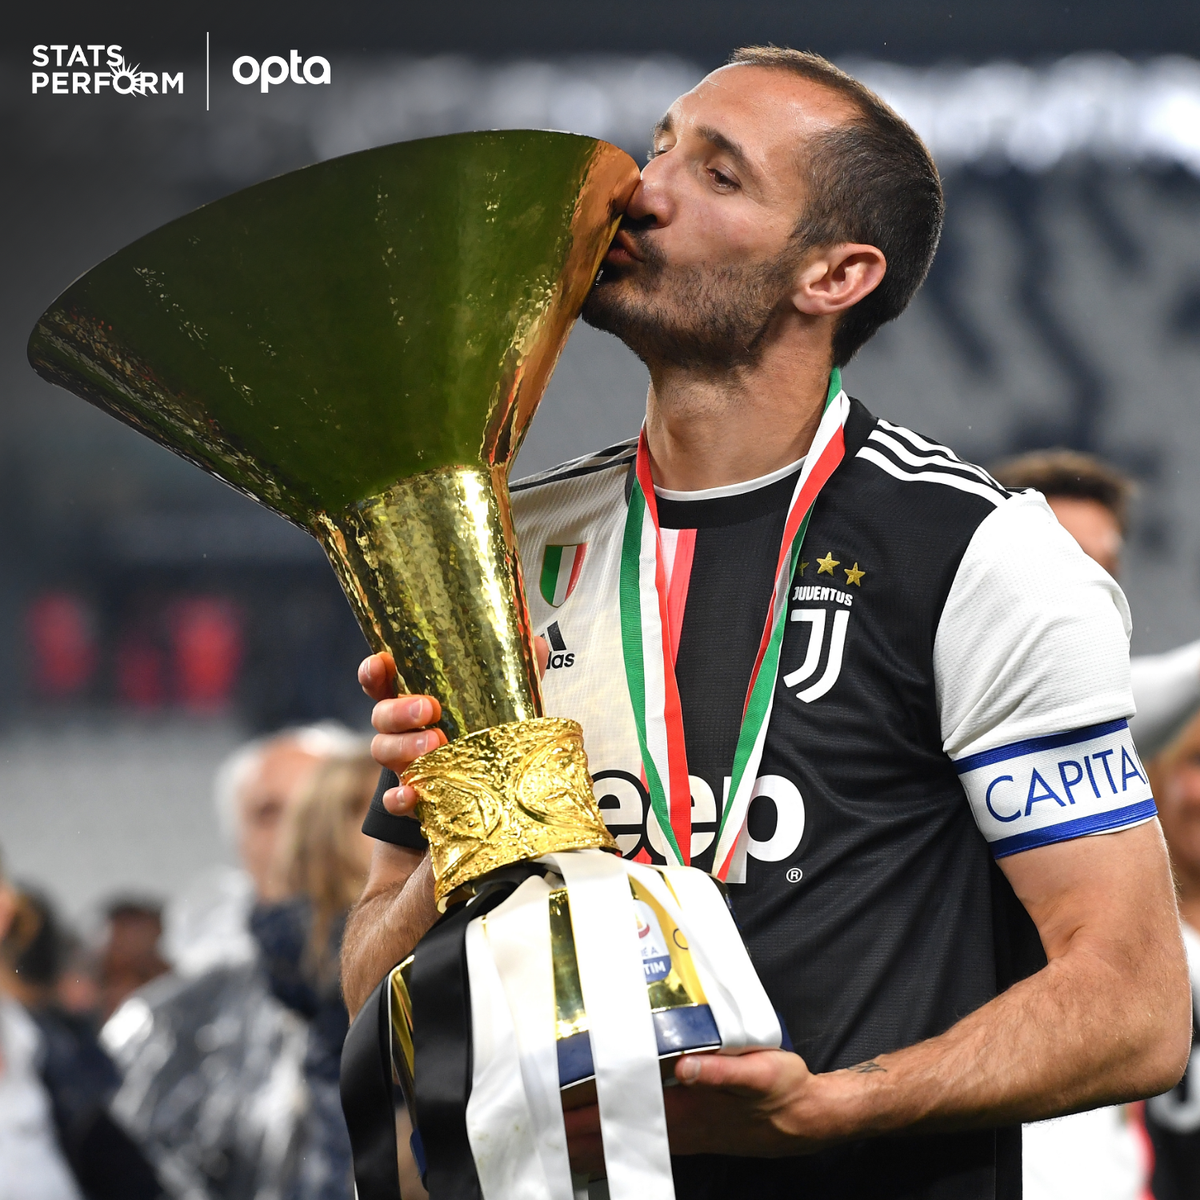 9 - Giorgio #Chiellini is the only #Juventus player with at least one appearance in Serie A in the last nine winning seasons. Captain.  #SerieA #JuveSamp #JuveSampdoria https://t.co/UcmkUM1G9p